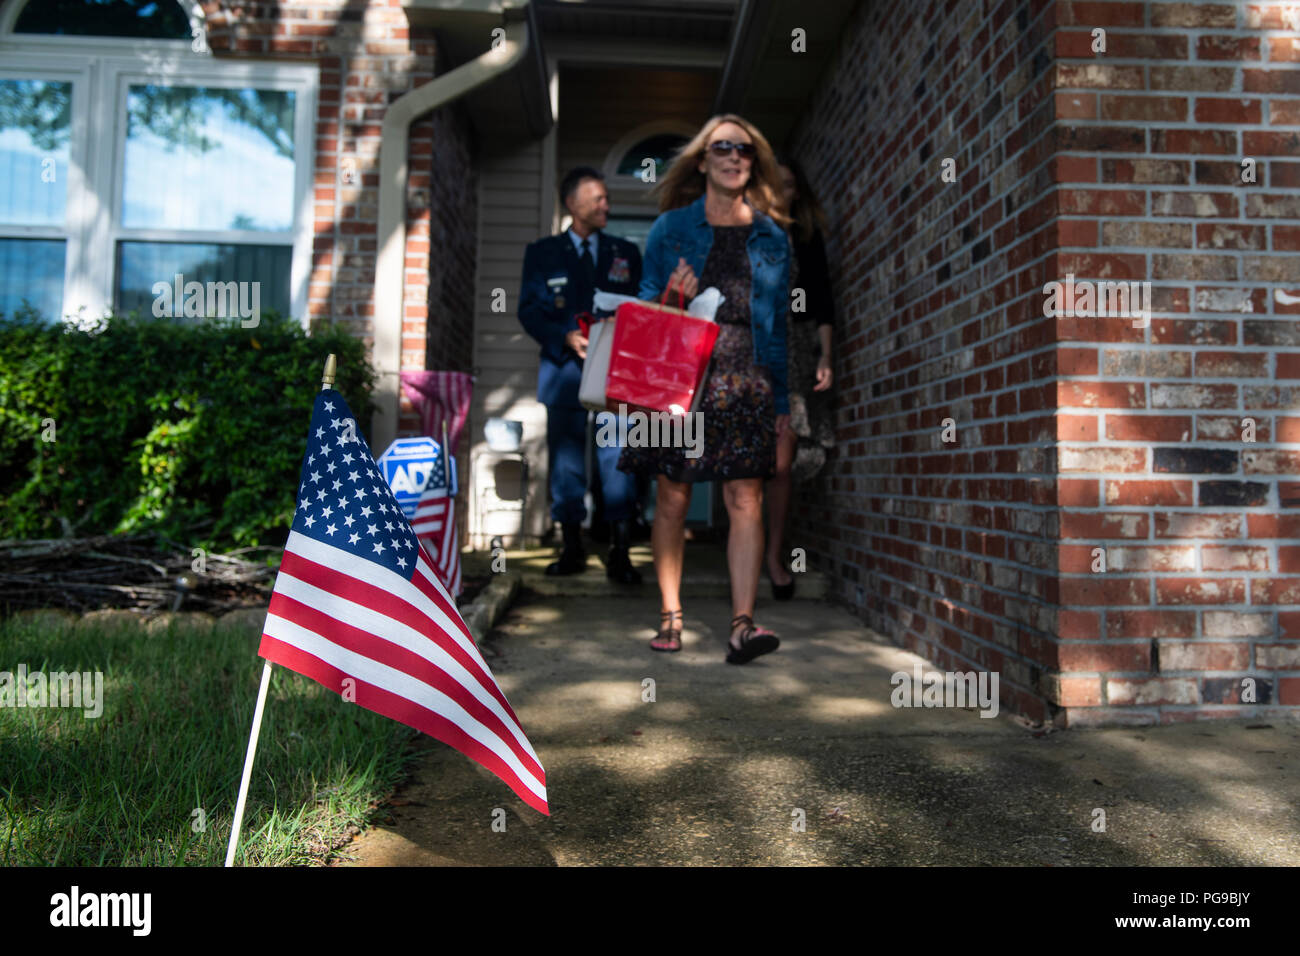 An American Flag stands in the lawn of U.S. Air Force Tech. Sgt. John Chapman's family's residence in Navarre, Florida, Aug. 20, 2018. President Donald Trump will posthumously award the Medal of Honor to Chapman's family at a ceremony on August 22 for his extraordinary heroism in March 2002 while deployed to Afghanistan. (U.S. Air Force photo by Senior Airman Joseph Pick) - Stock Image